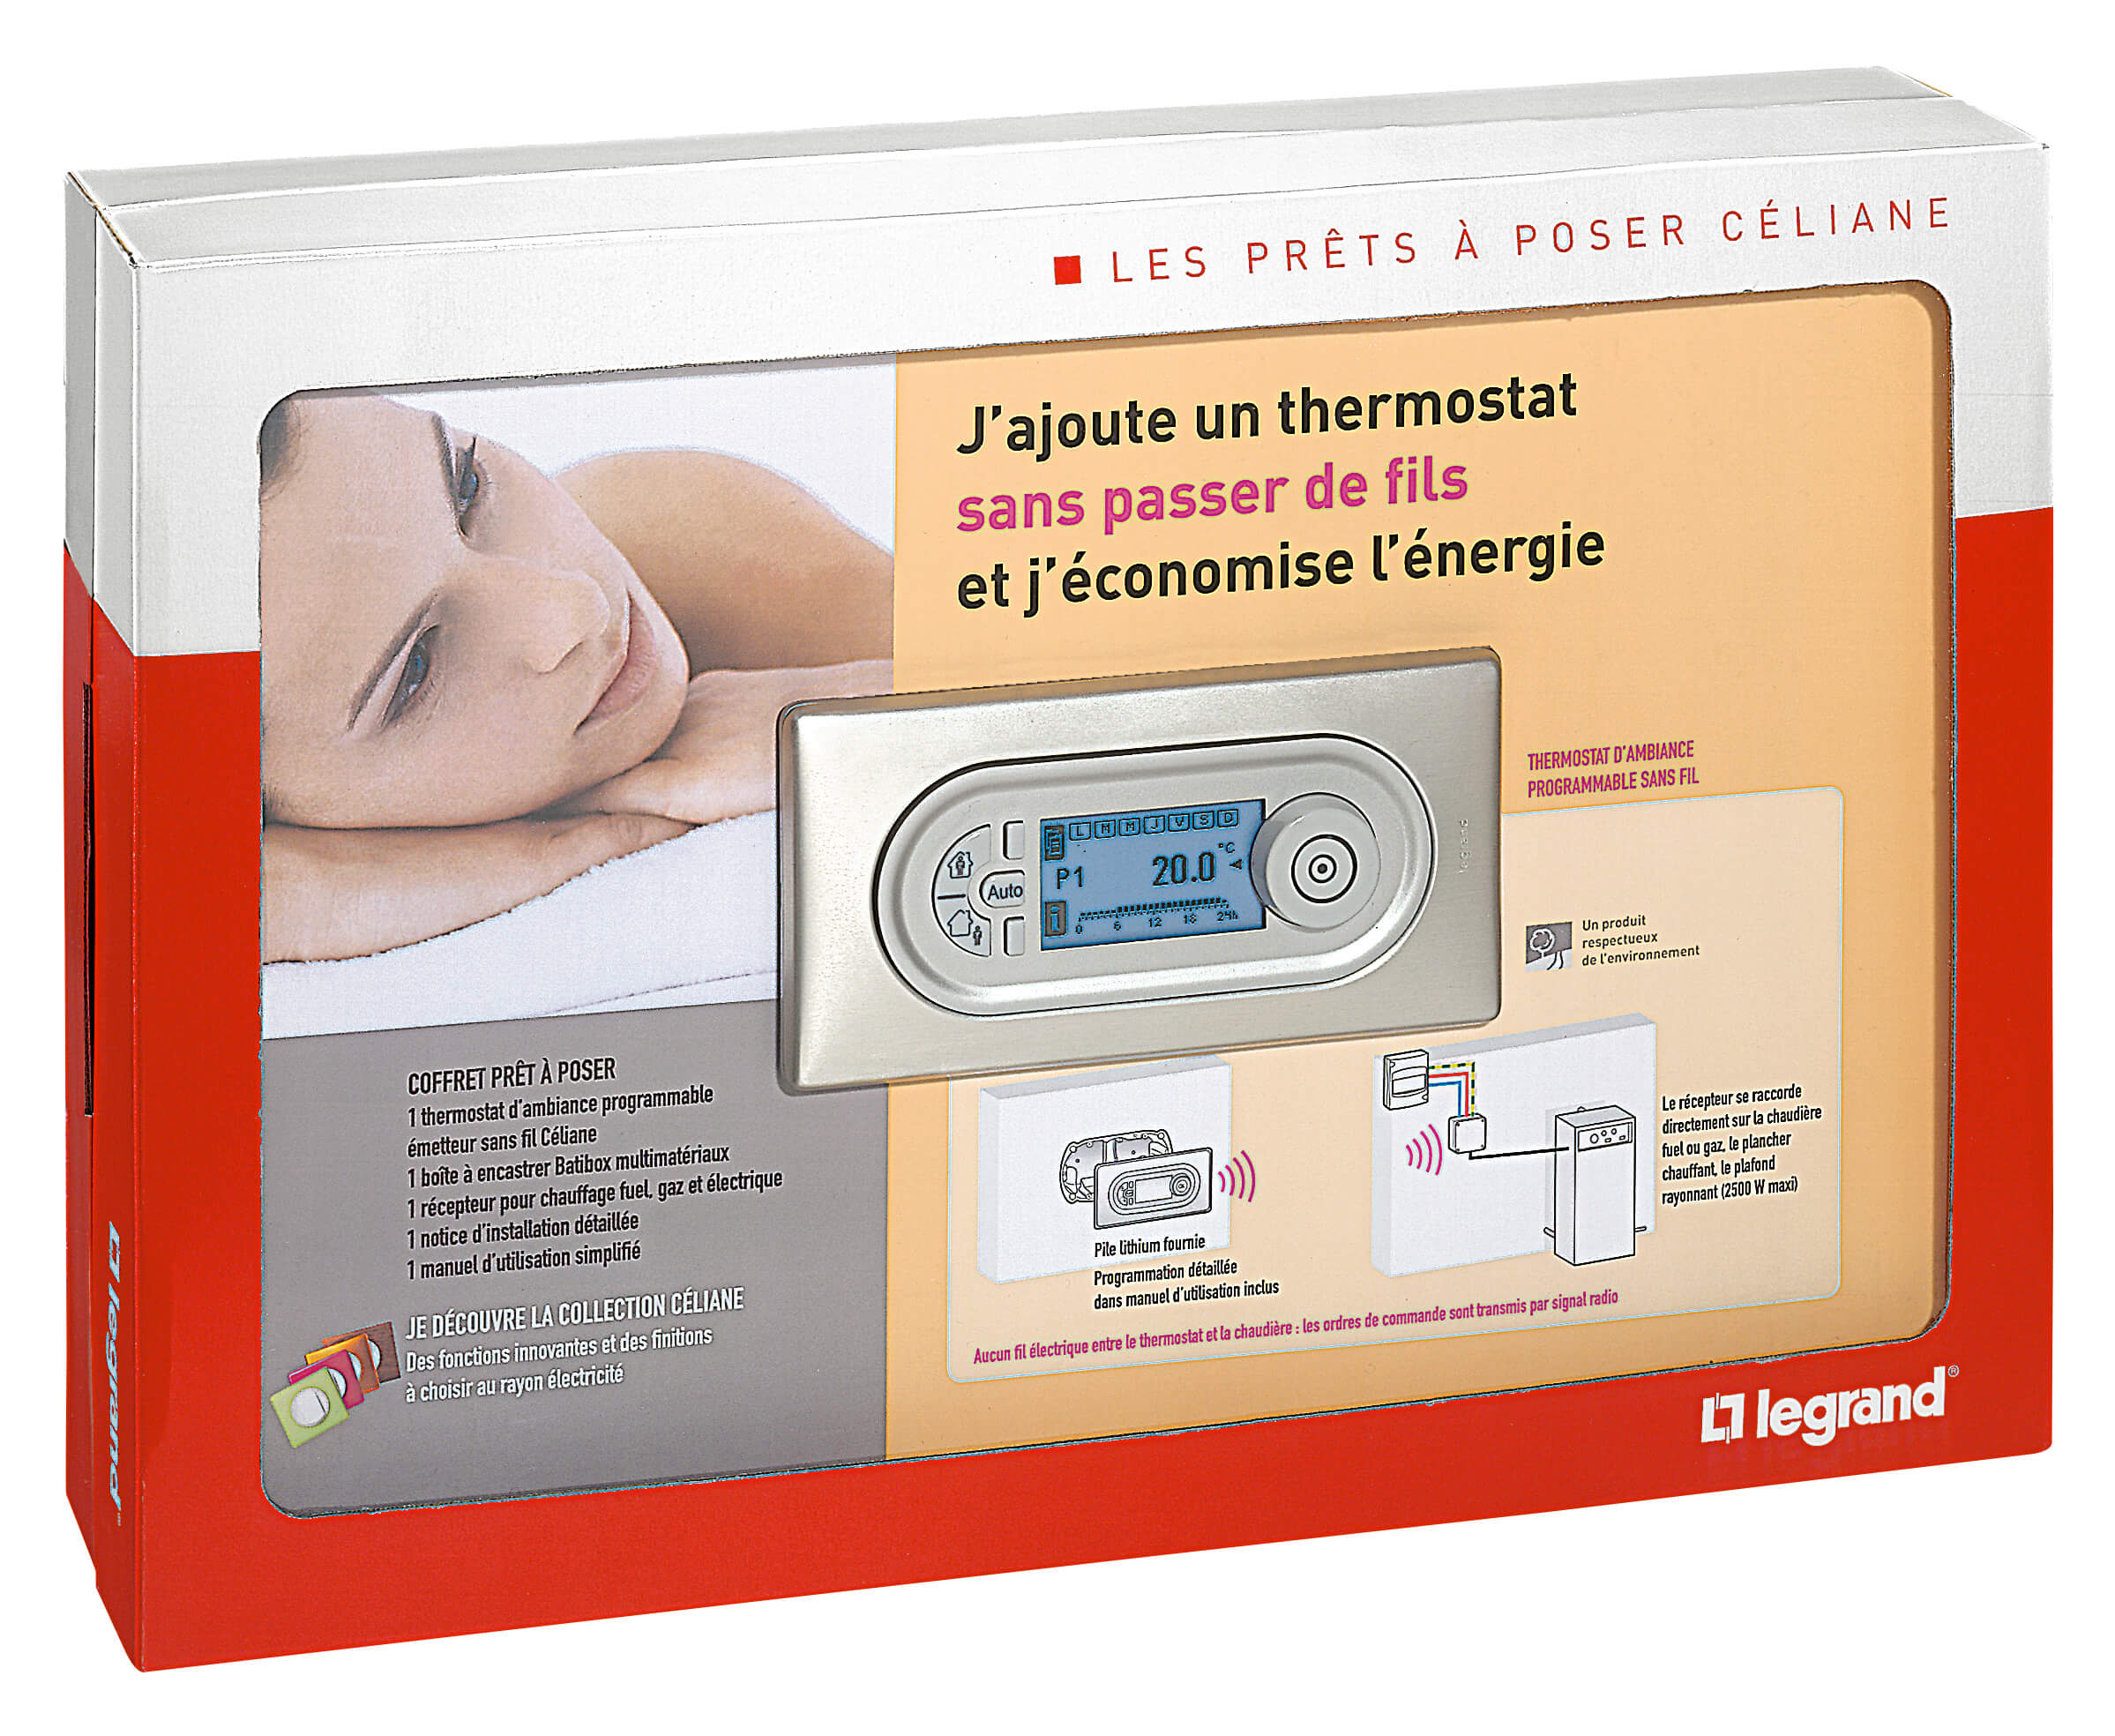 Installation de thermostat programmable paris 0611944940 - Thermostat programmable sans fil ...